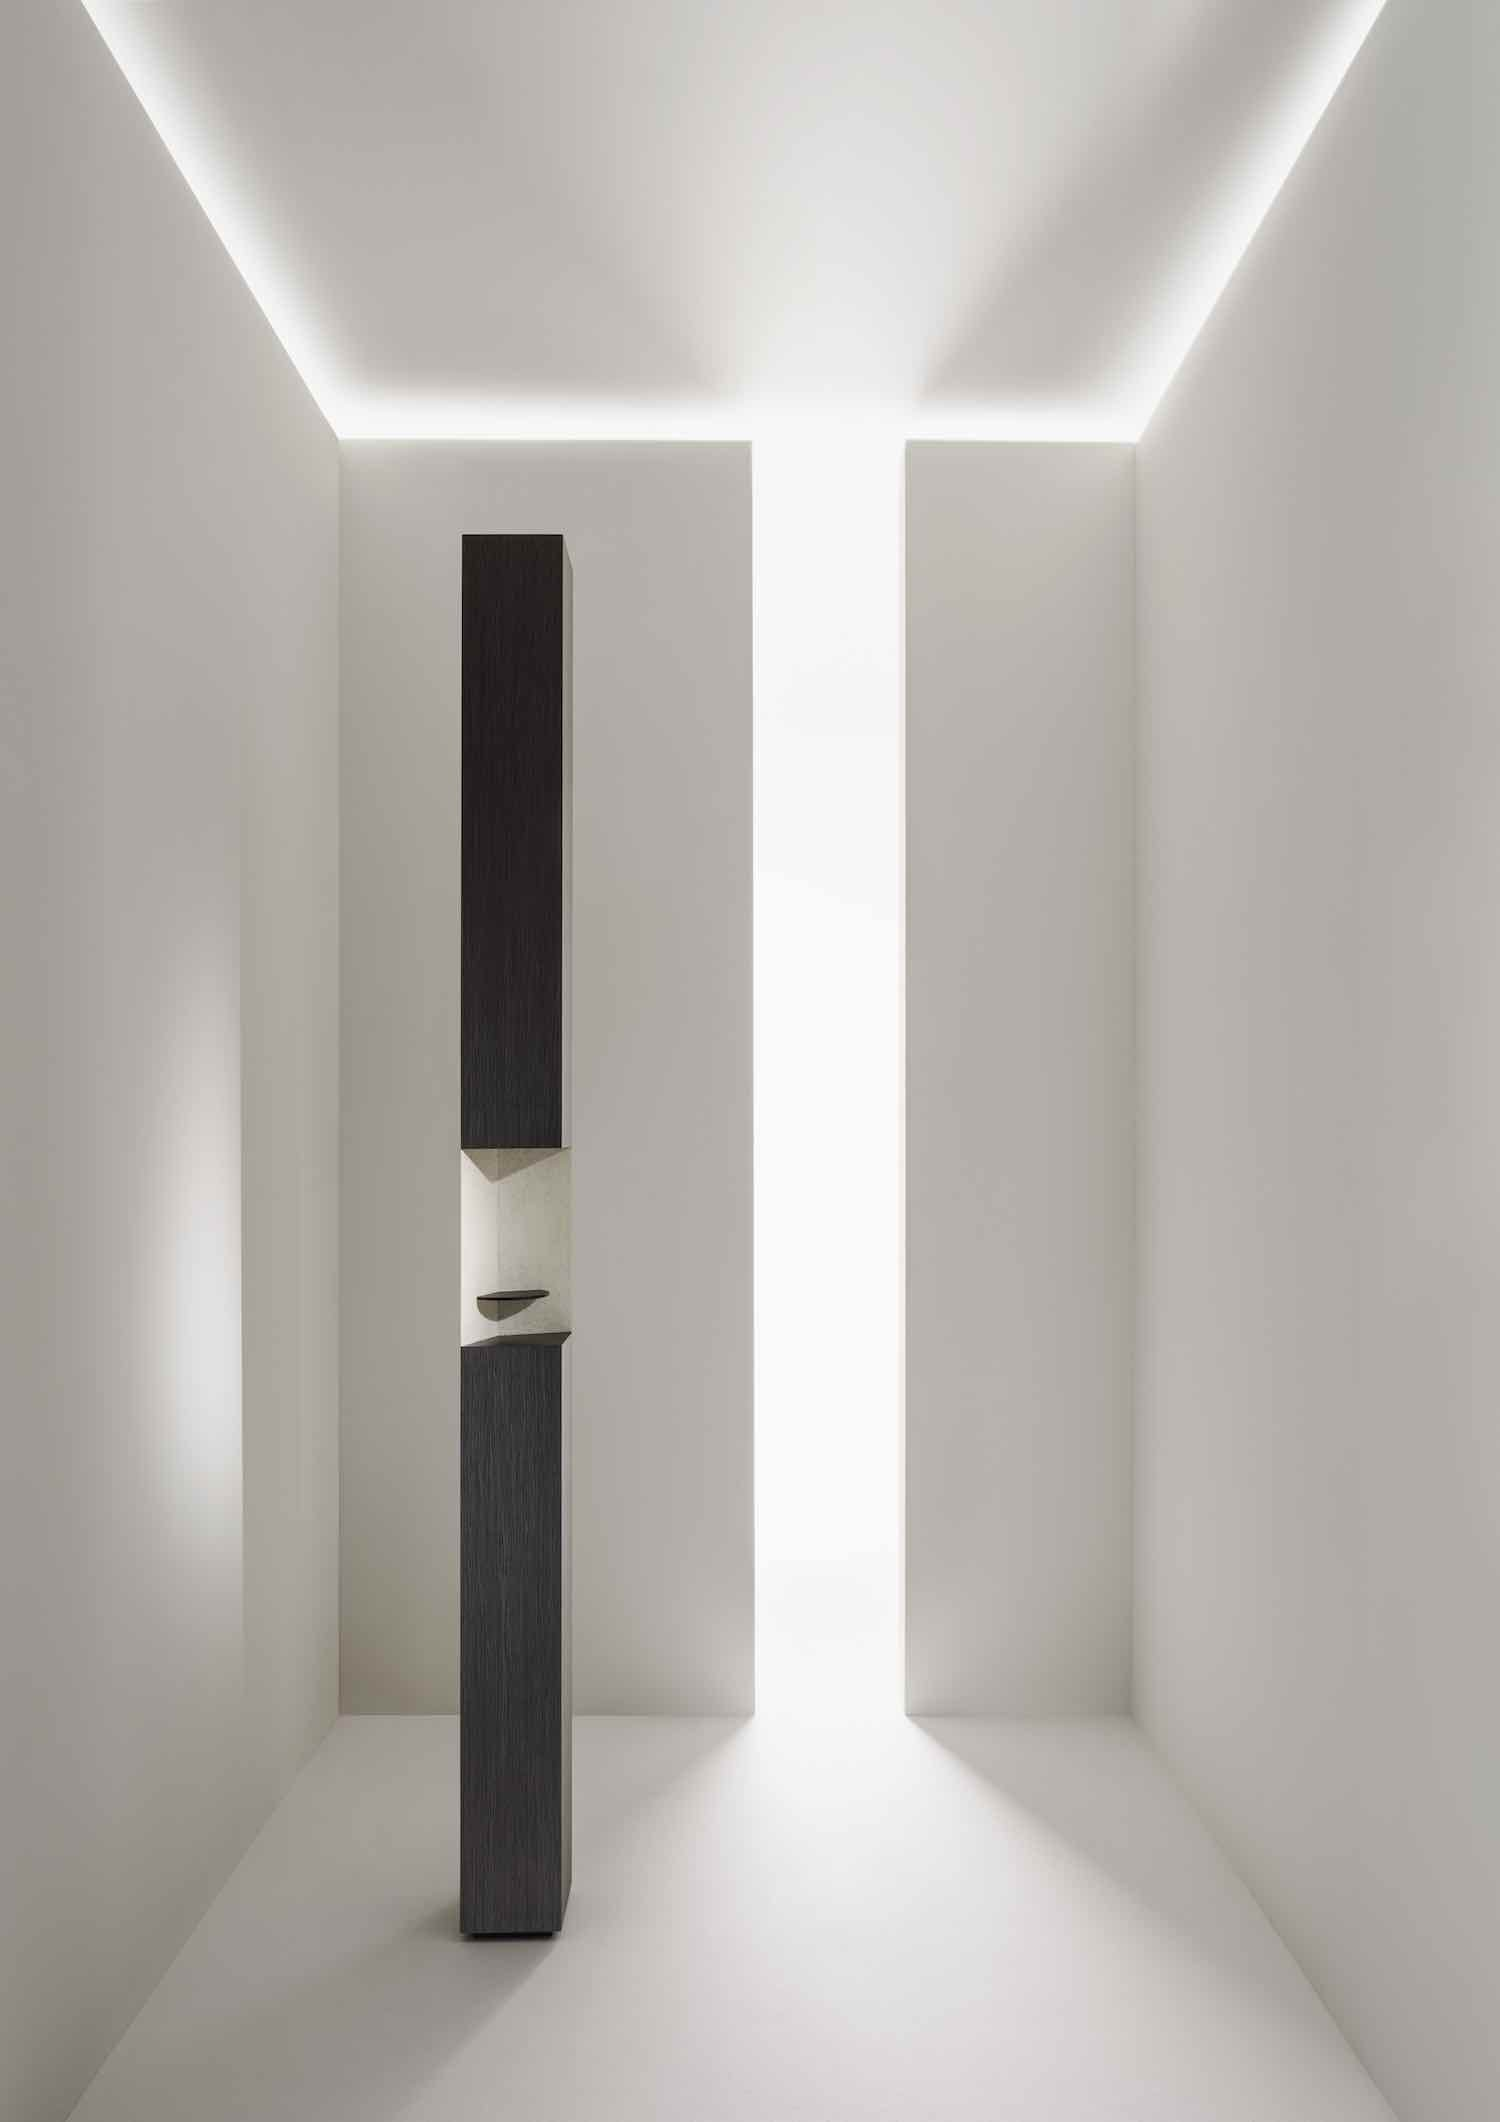 THE TABLES OF ELEMENTS by Piero Lissoni x ALPI. Photo by Santi Caleca, courtesy of ALPI.